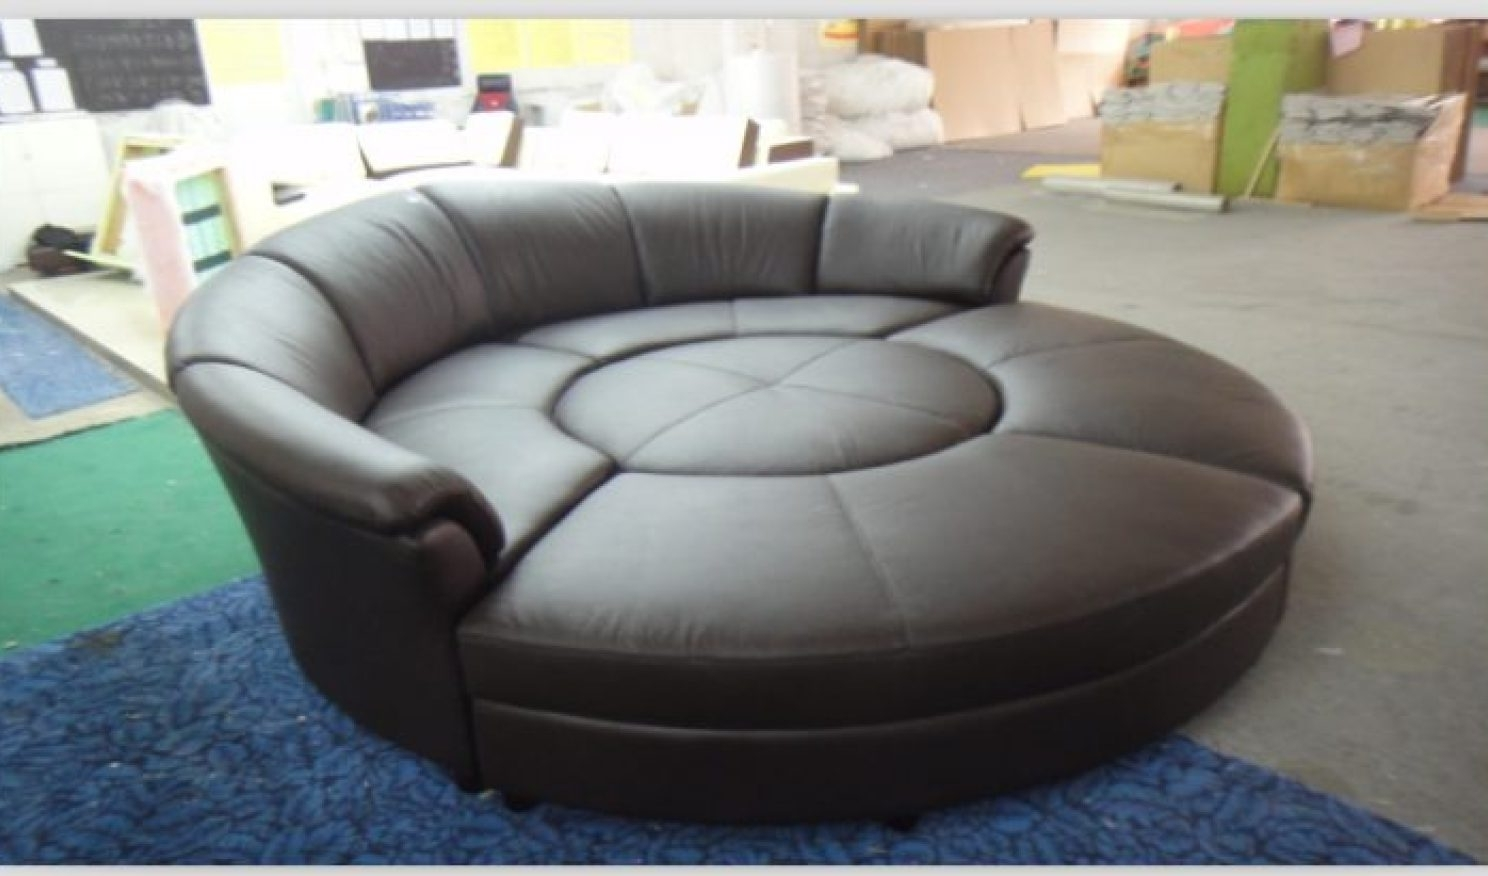 Big Round Sofa Chairs With Regard To Well Liked Sofa : Sofa Cute Big Chairs Stunning Circular Chair Explore Round (View 3 of 20)